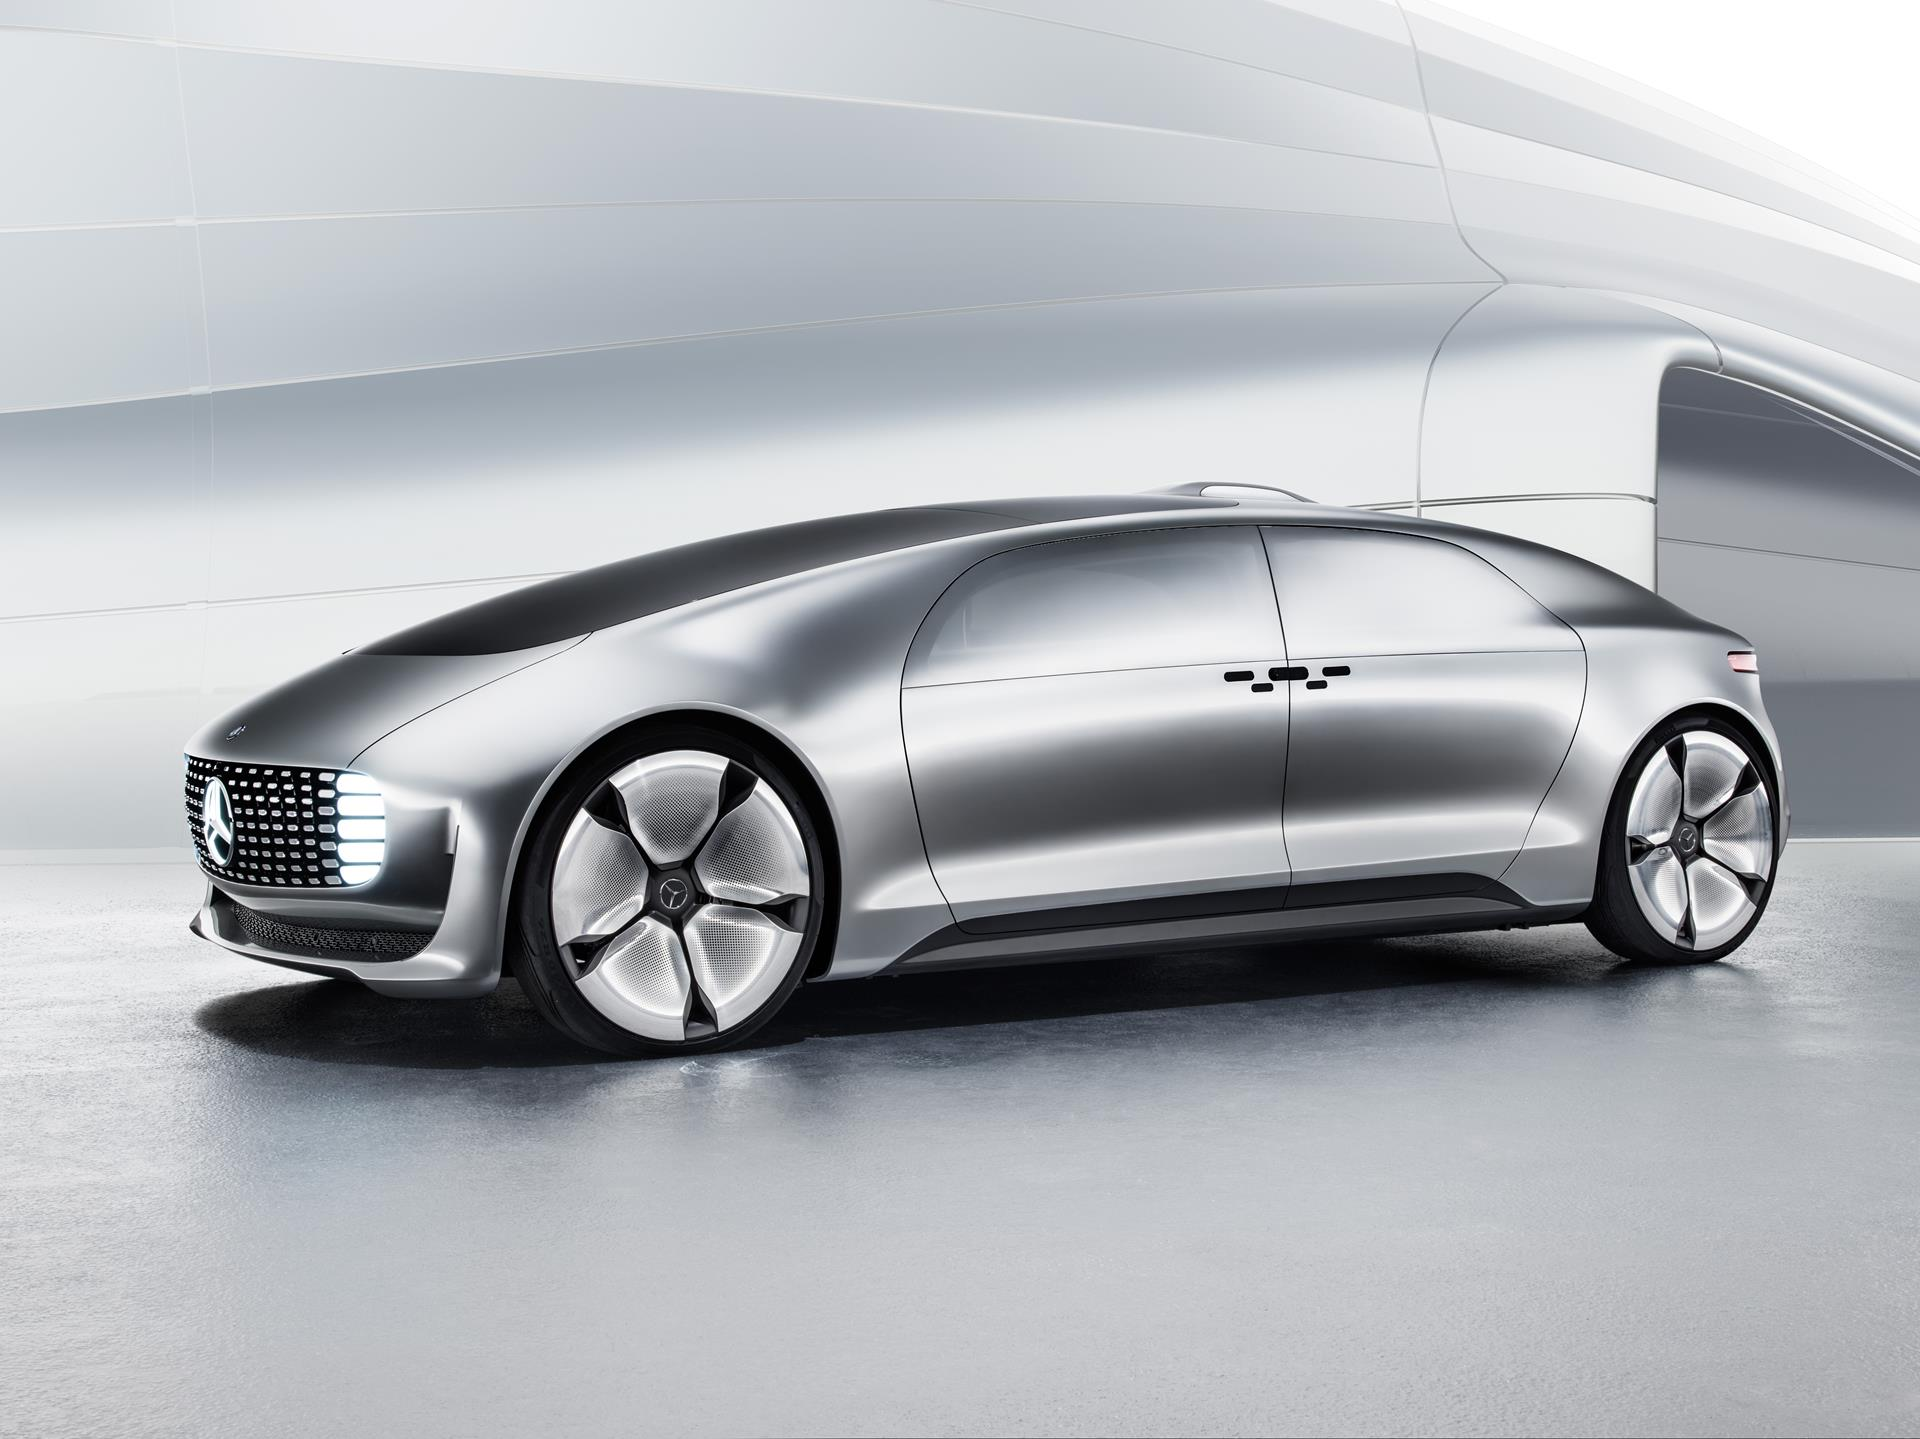 2015 mercedes benz f 015 luxury in motion concept for Mercedes benz cars